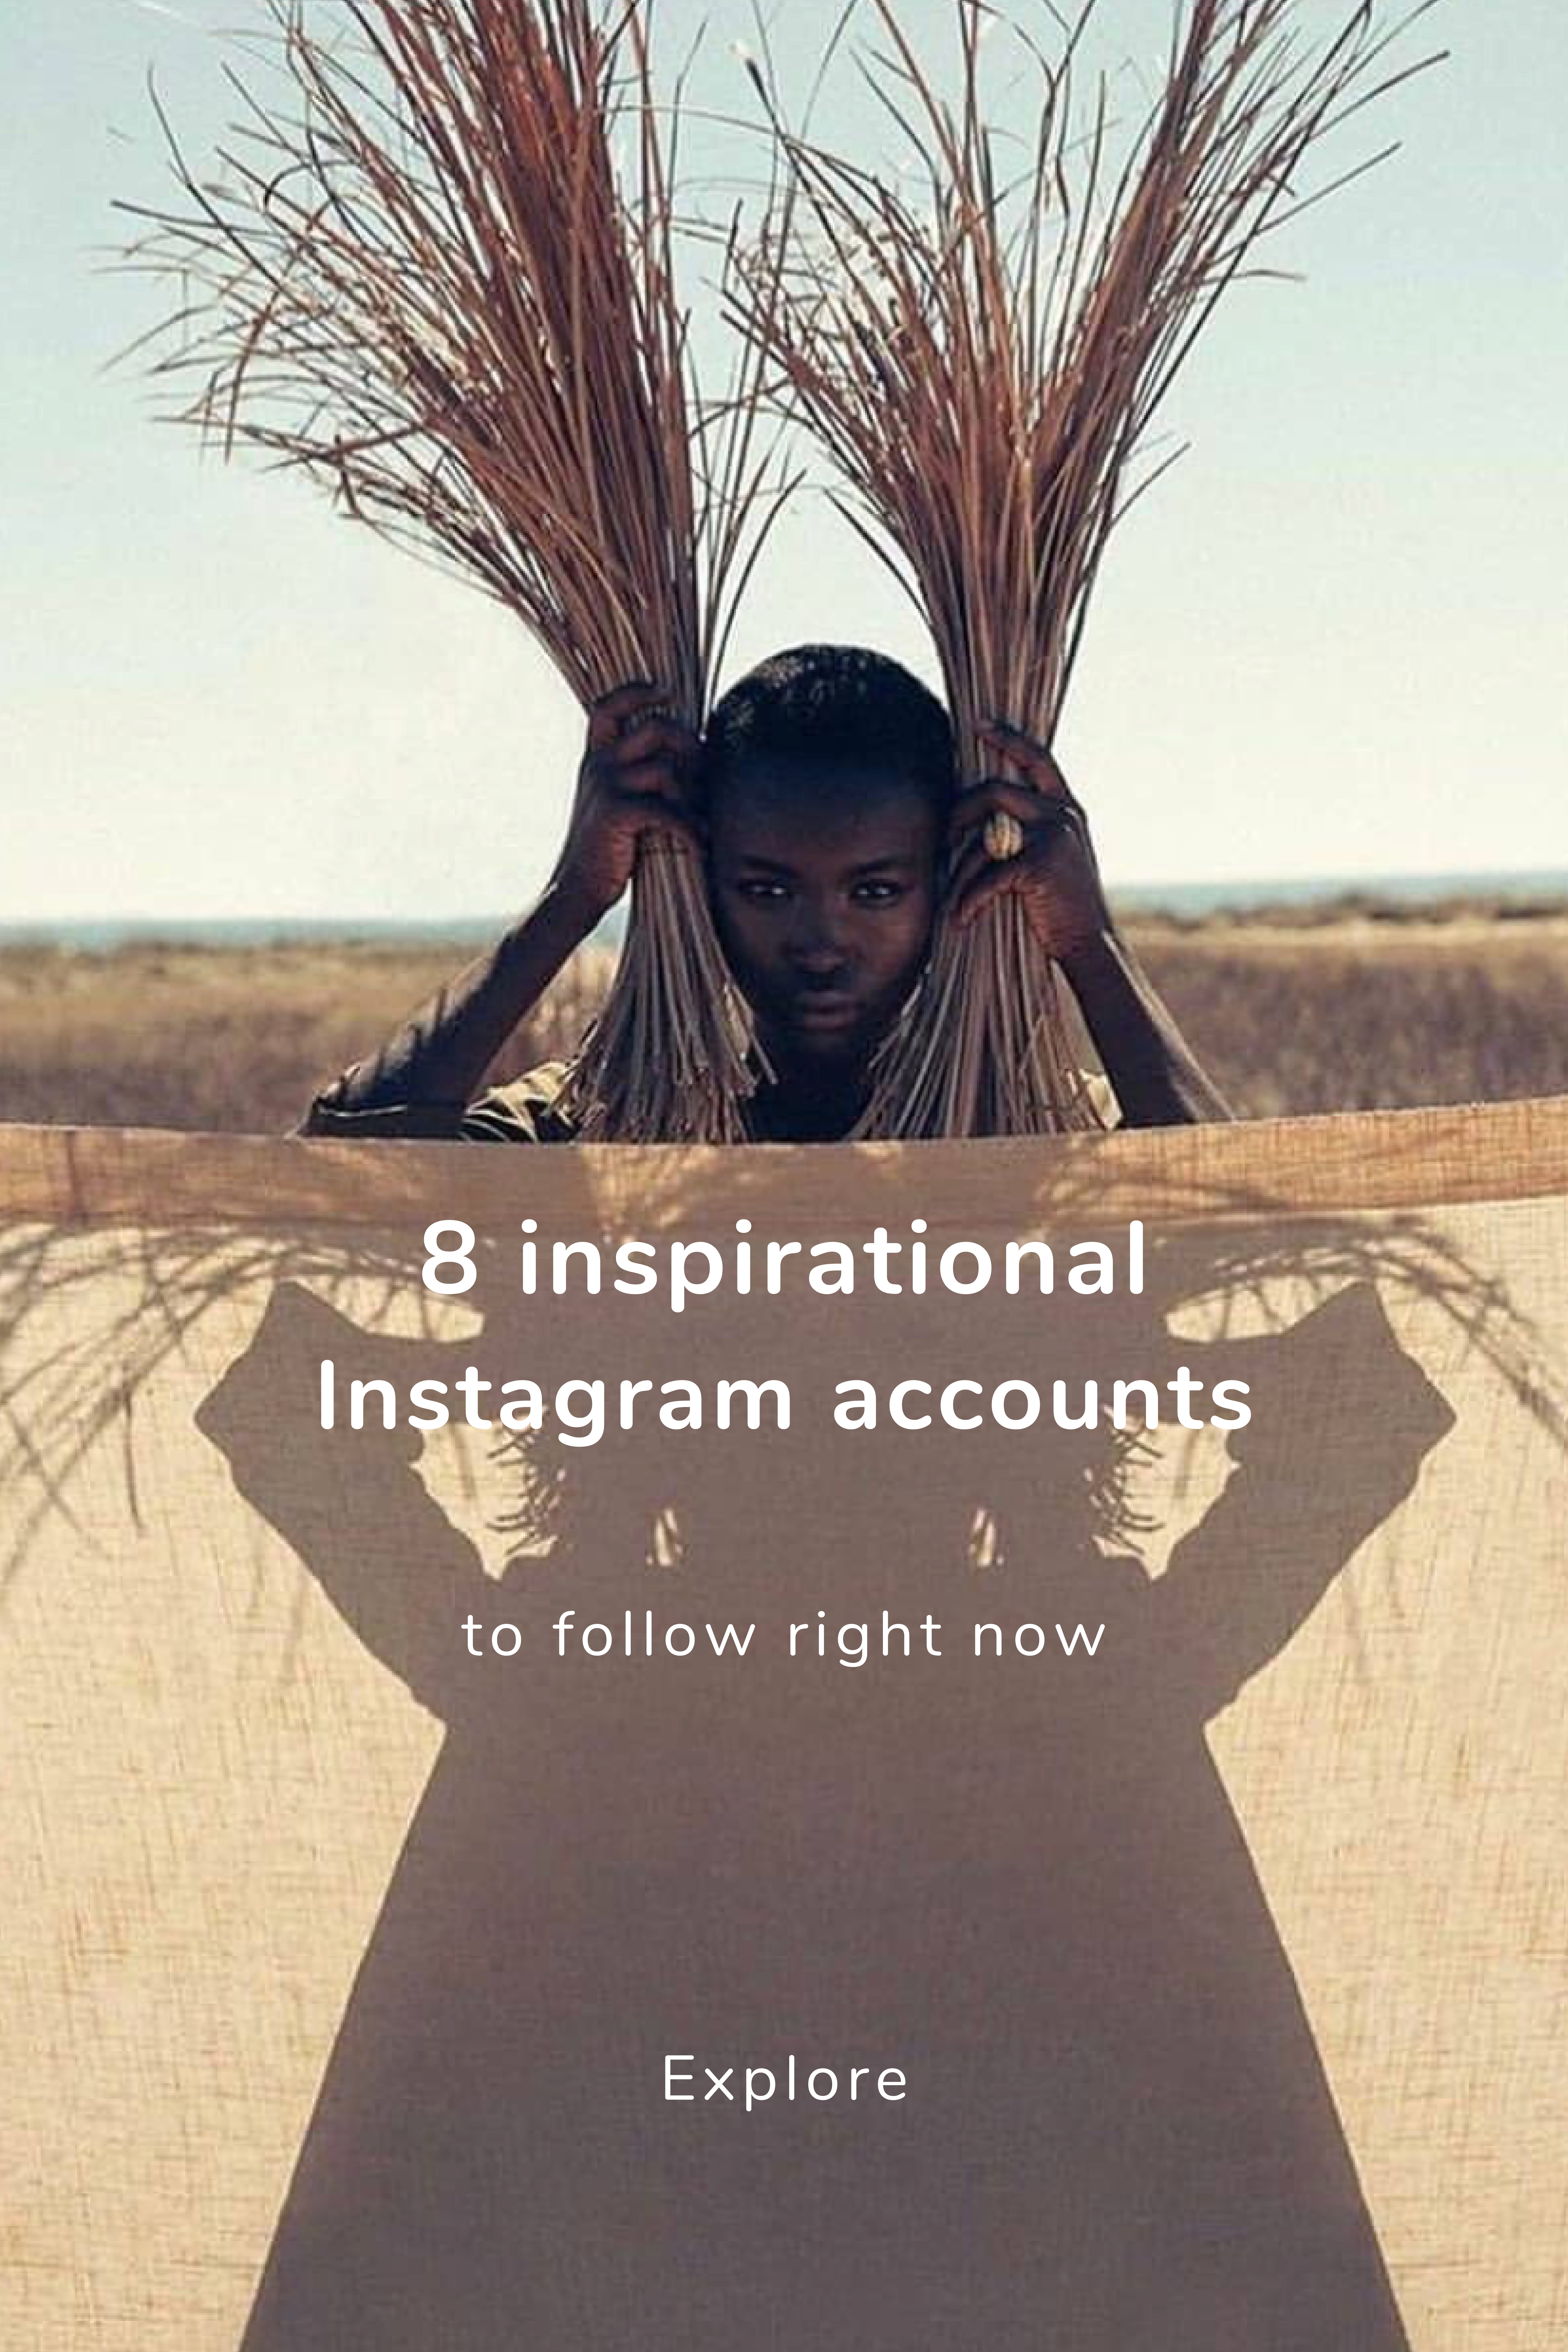 8 inspirational Instagram accounts to follow right now